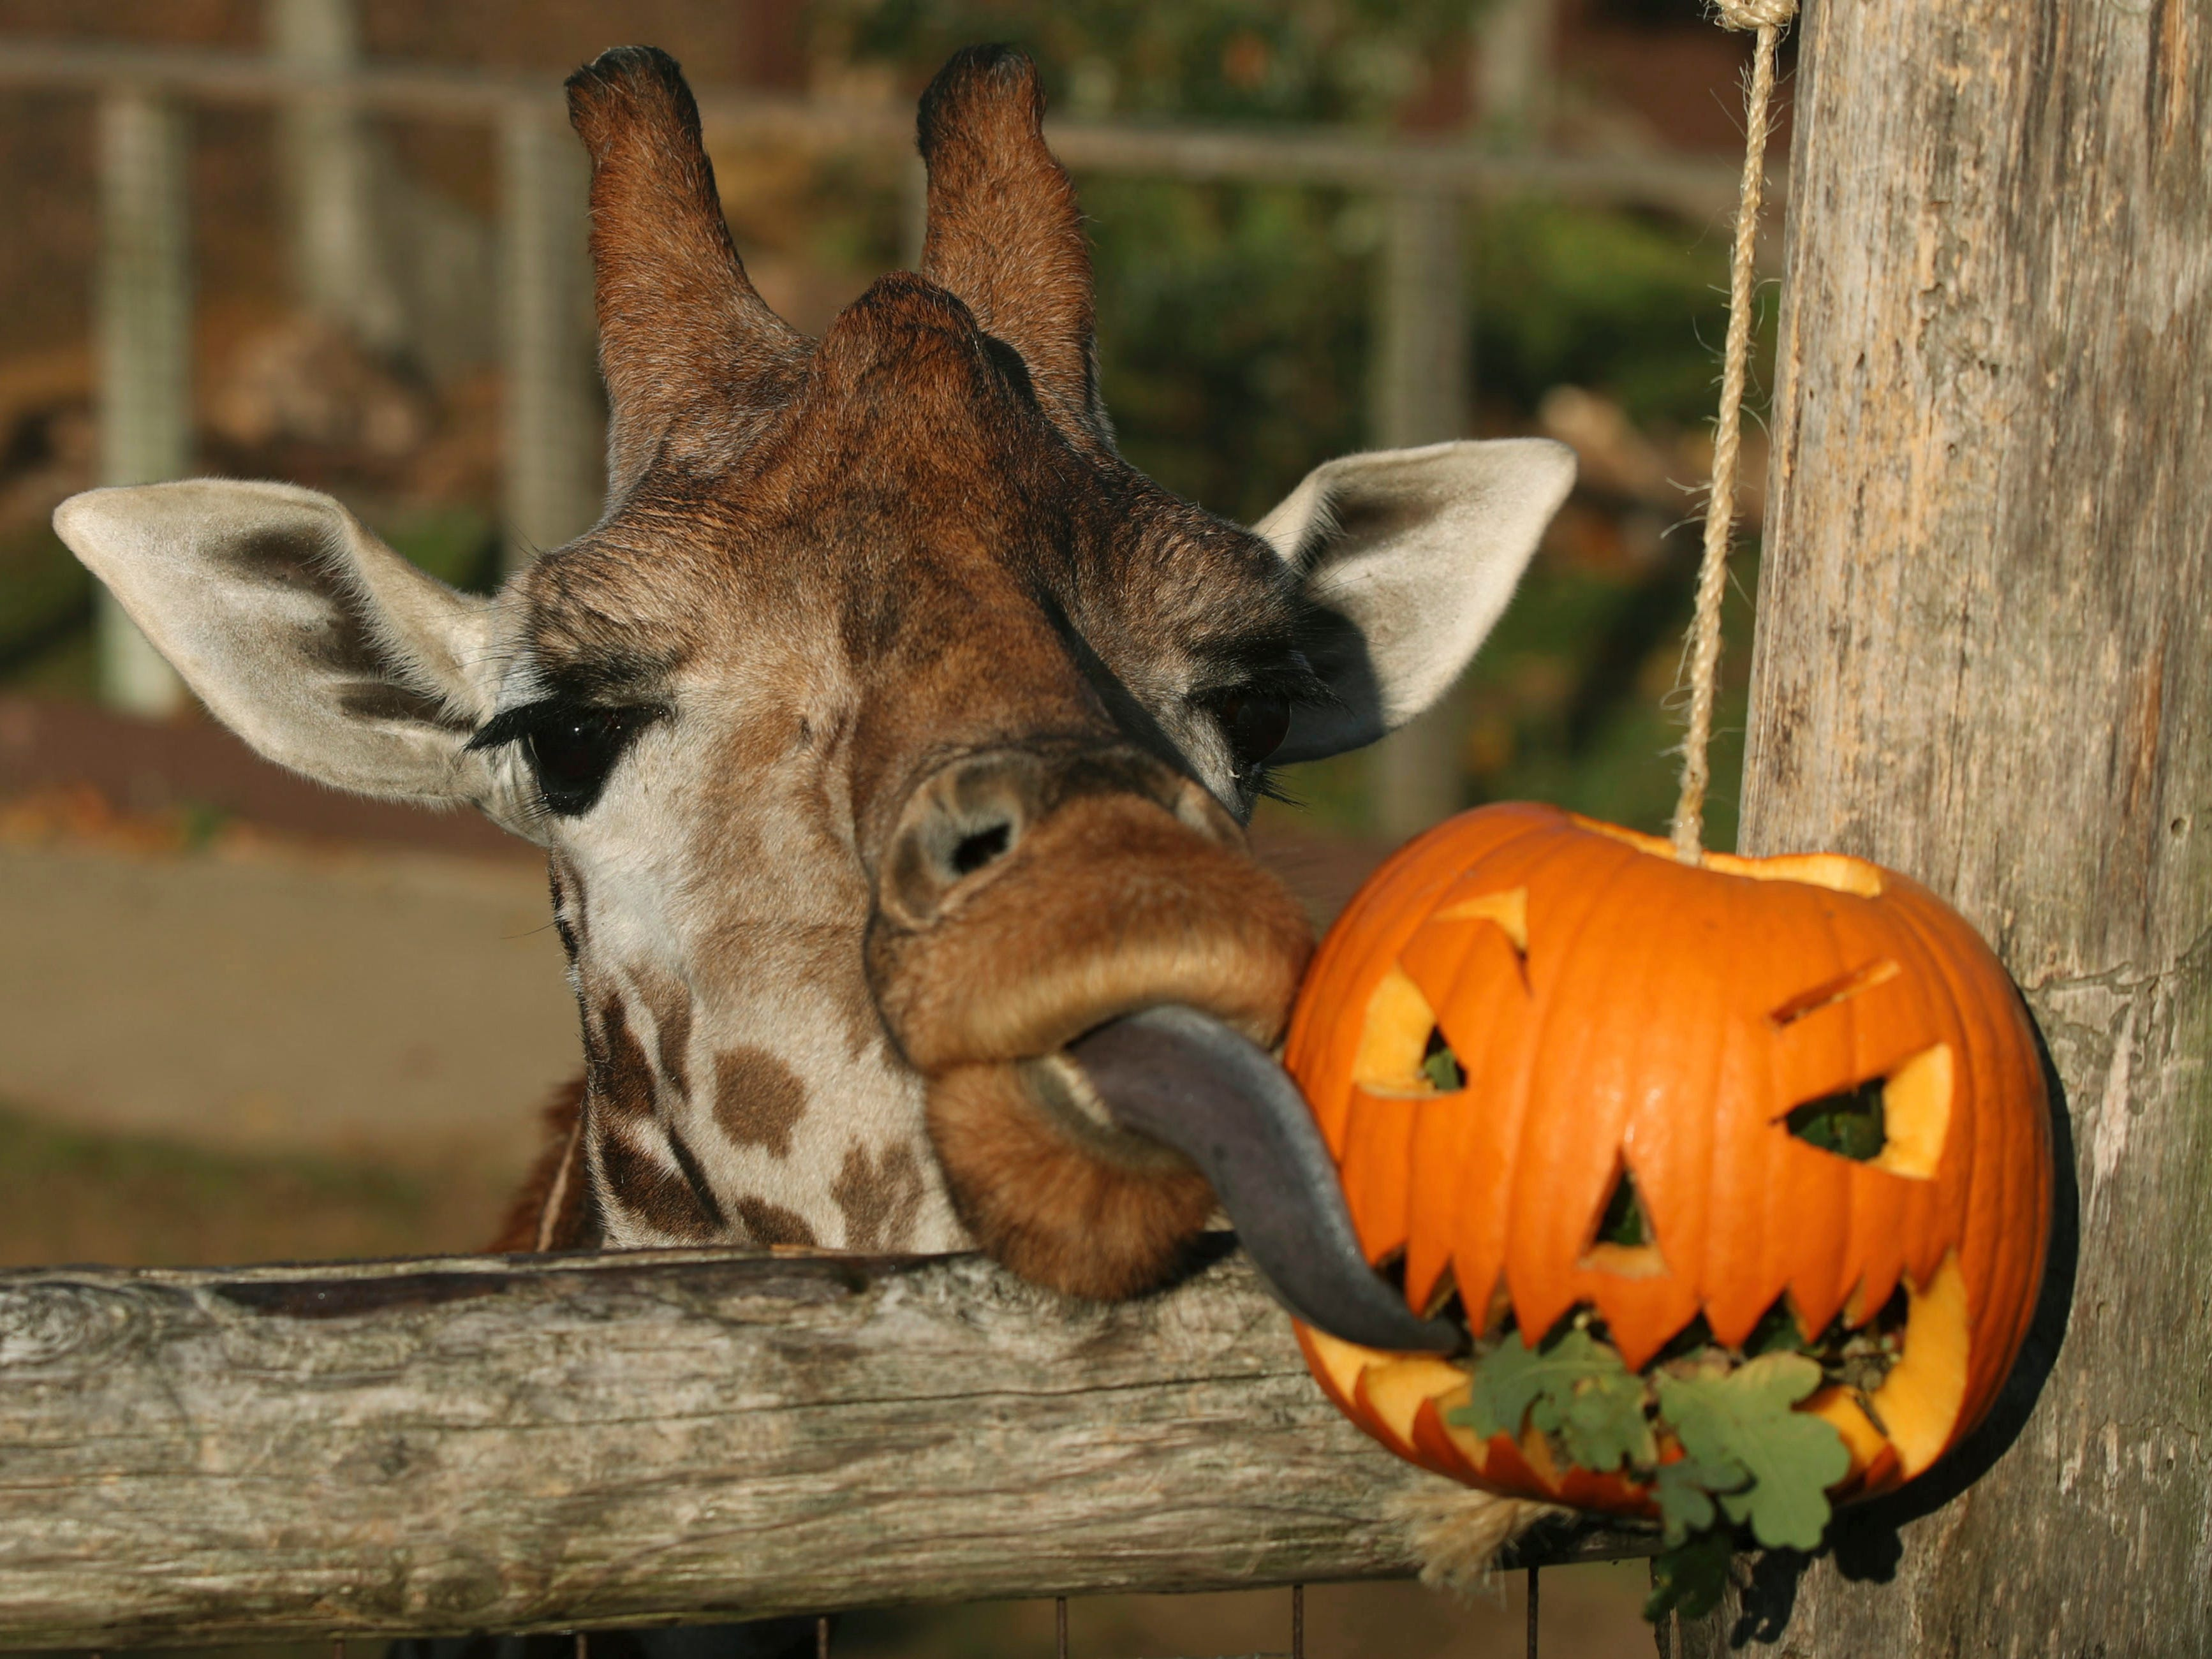 A giraffe eats leaves from a pumpkin as a Halloween treat during a photo call ahead of Halloween, at London Zoo, in London, Thursday, Oct. 25, 2018.